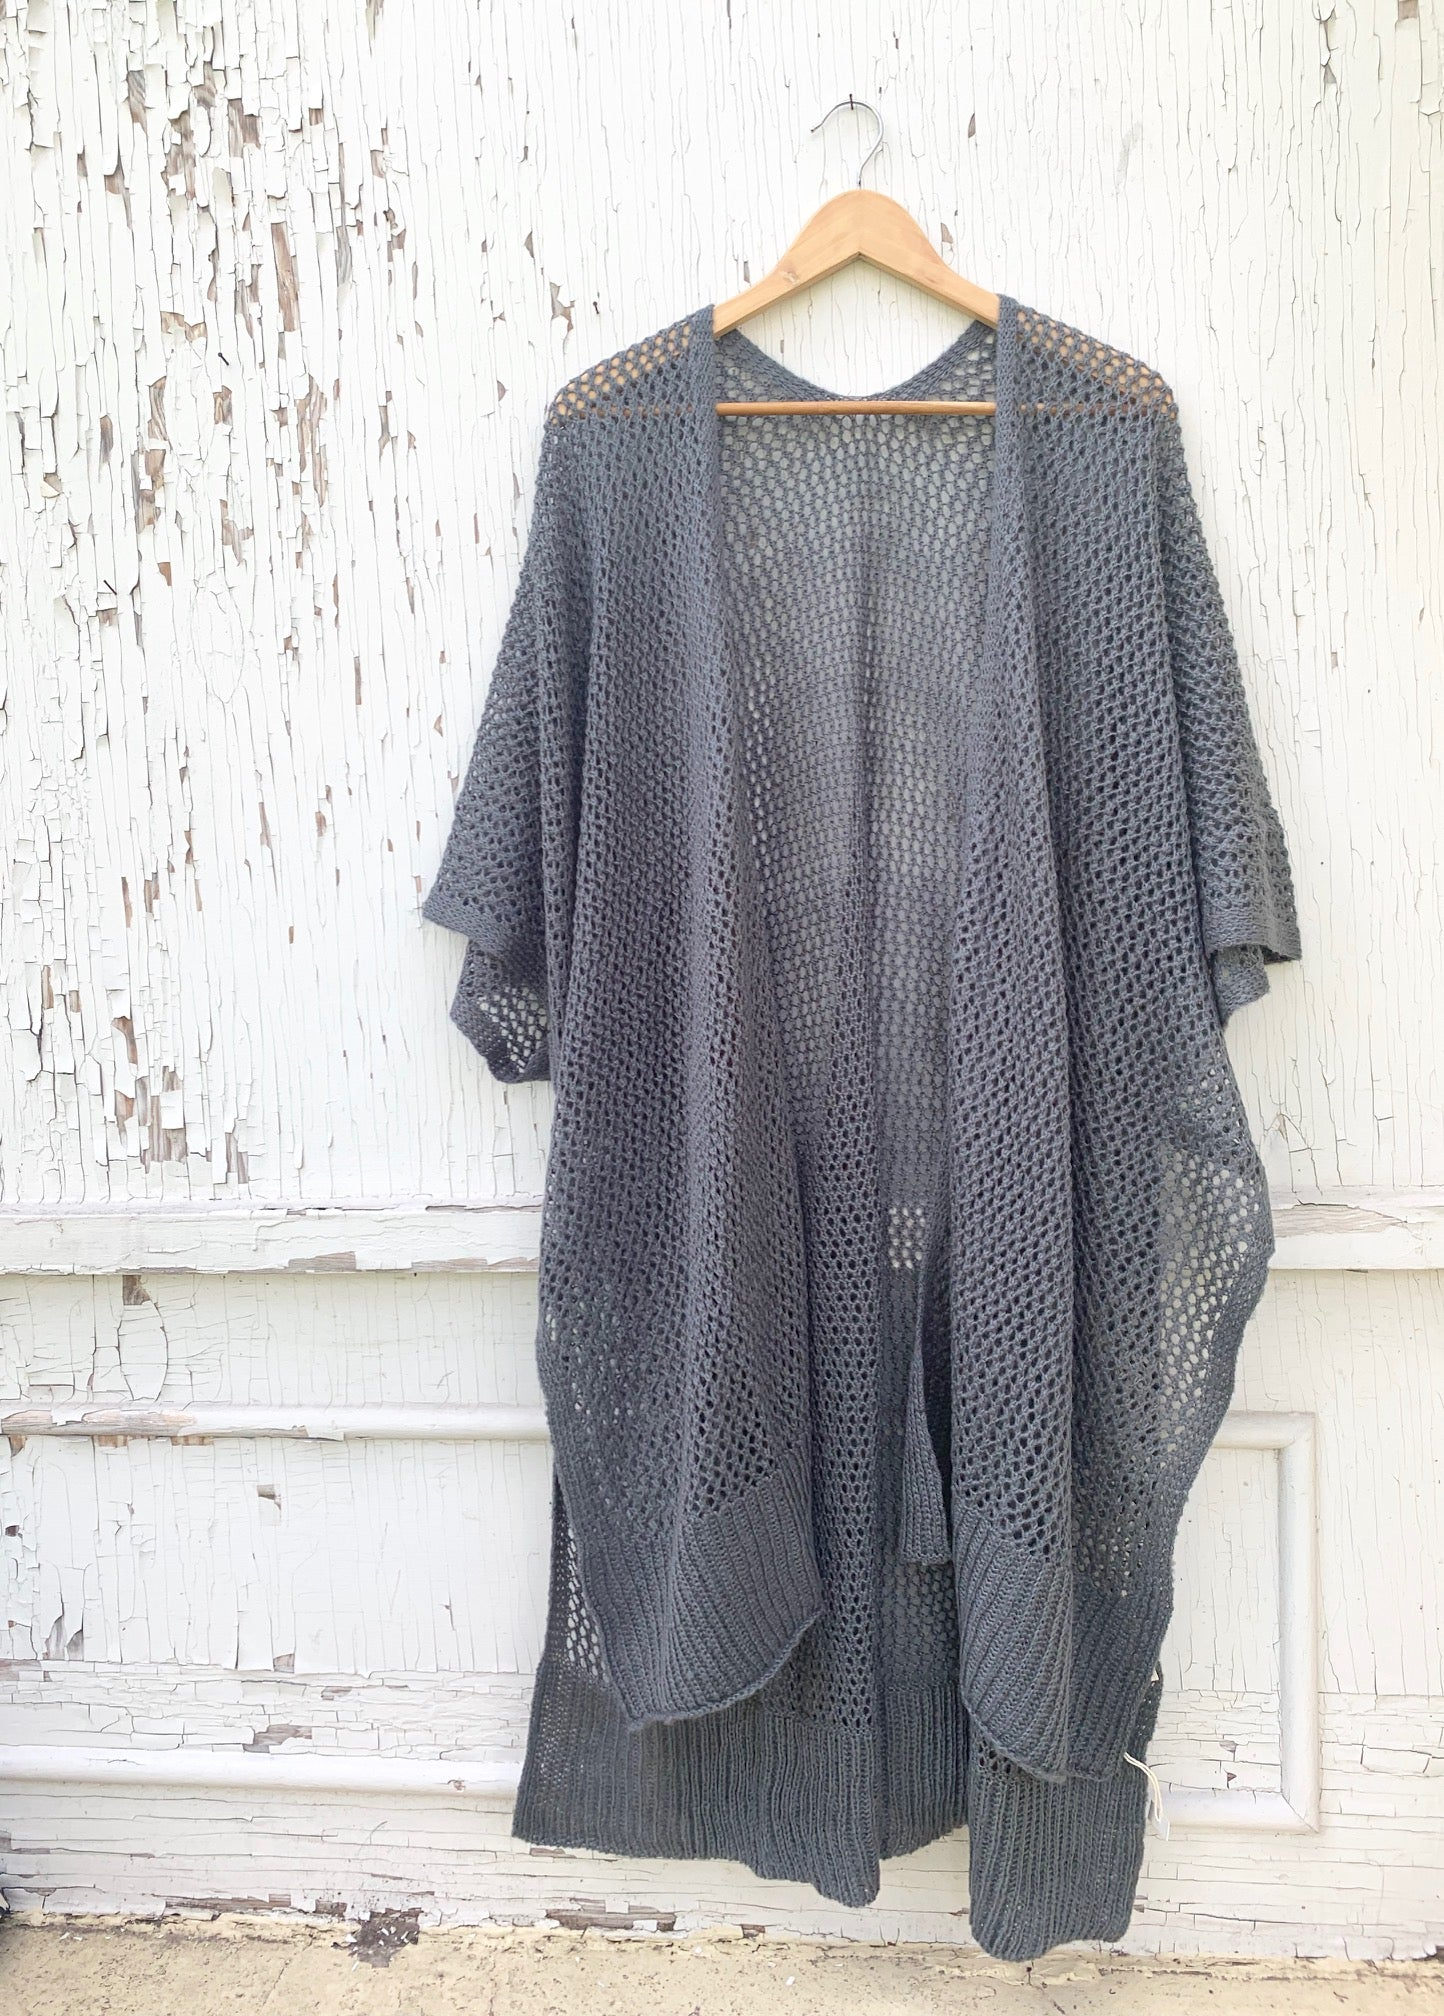 Sandy Tides in Navy Open Weave Poncho